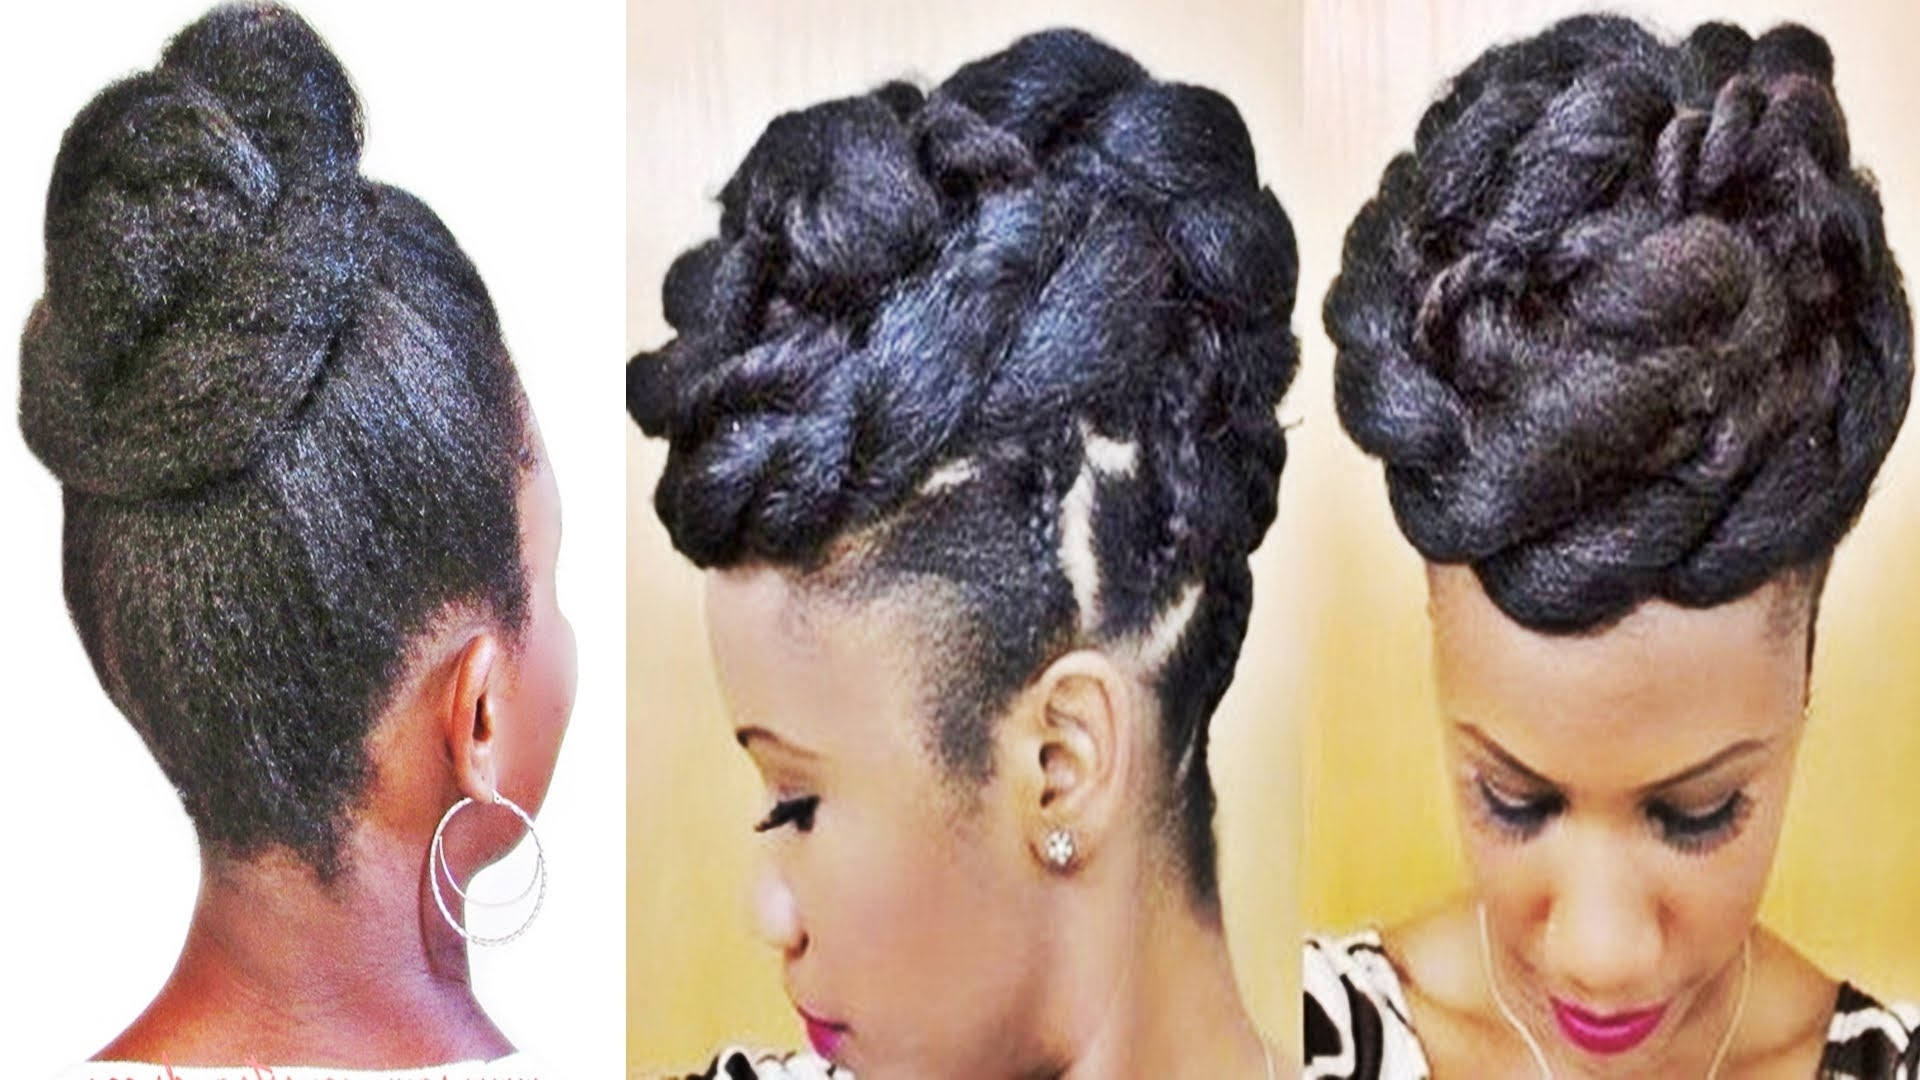 Braids And Twists Updo Hairstyle For Black Women – Youtube With Regard To Best And Newest Braided Updos African American Hairstyles (View 4 of 15)